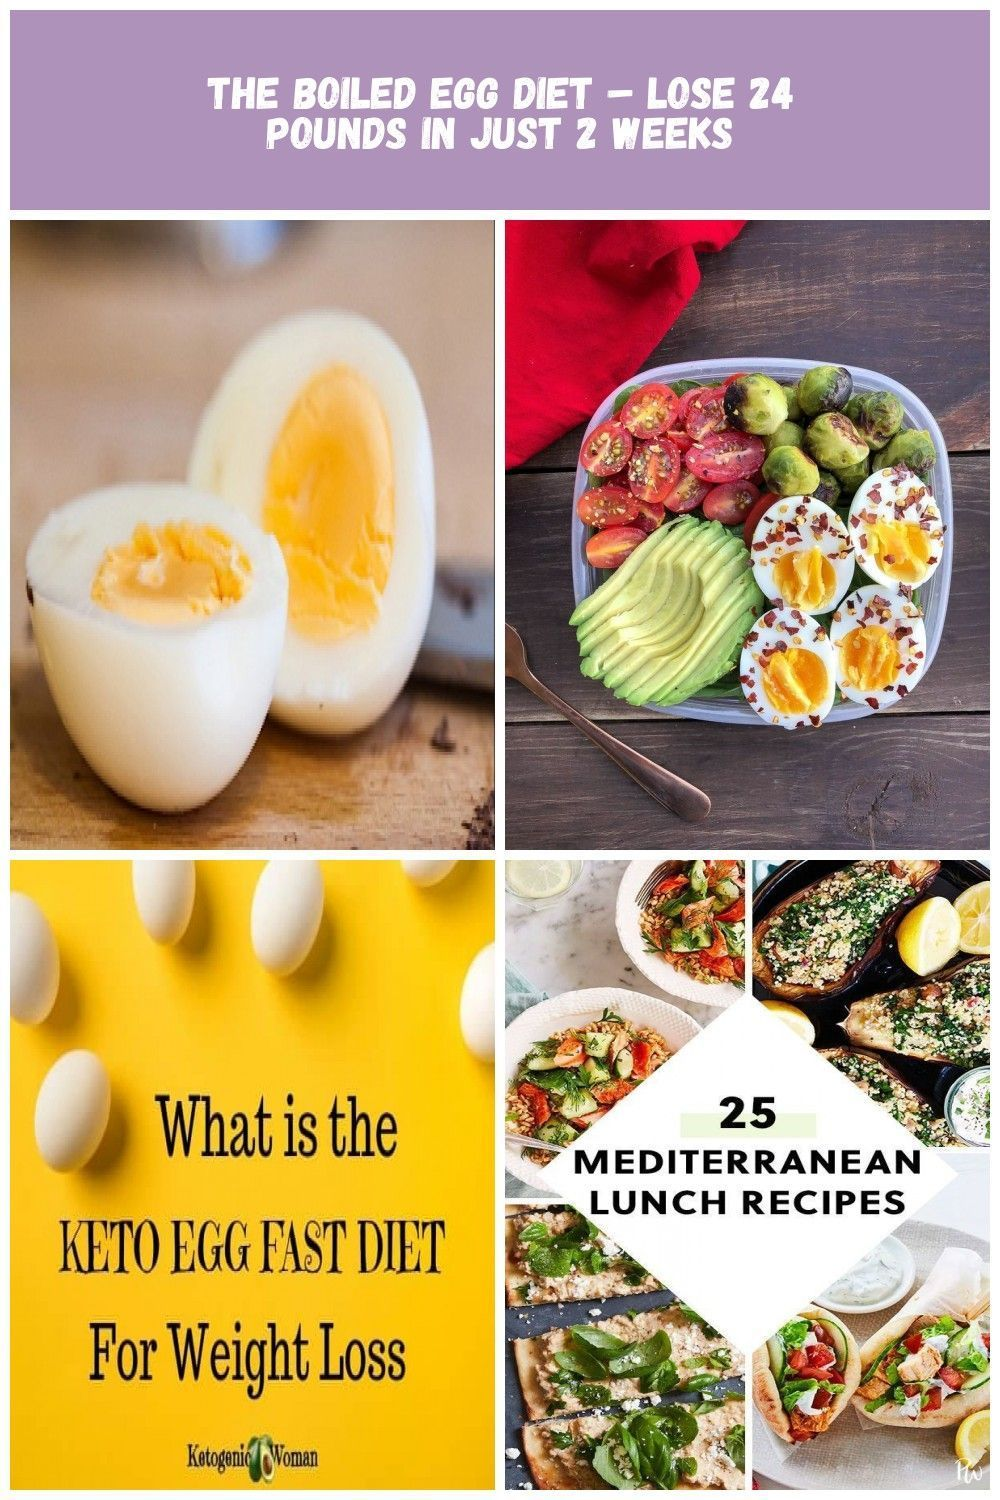 The Boiled Egg Diet – Lose 24 Pounds In Just 2 Weeks #HealthDiet&Nutrition egg diet plan The Boiled Egg Diet – Lose 24 Pounds In Just 2 Weeks #boiledeggnutrition The Boiled Egg Diet – Lose 24 Pounds In Just 2 Weeks #HealthDiet&Nutrition egg diet plan The Boiled Egg Diet – Lose 24 Pounds In Just 2 Weeks #boiledeggnutrition The Boiled Egg Diet – Lose 24 Pounds In Just 2 Weeks #HealthDiet&Nutrition egg diet plan The Boiled Egg Diet – Lose 24 Pounds In Just 2 Weeks #boiledeggnutrition Th #boiledeggnutrition